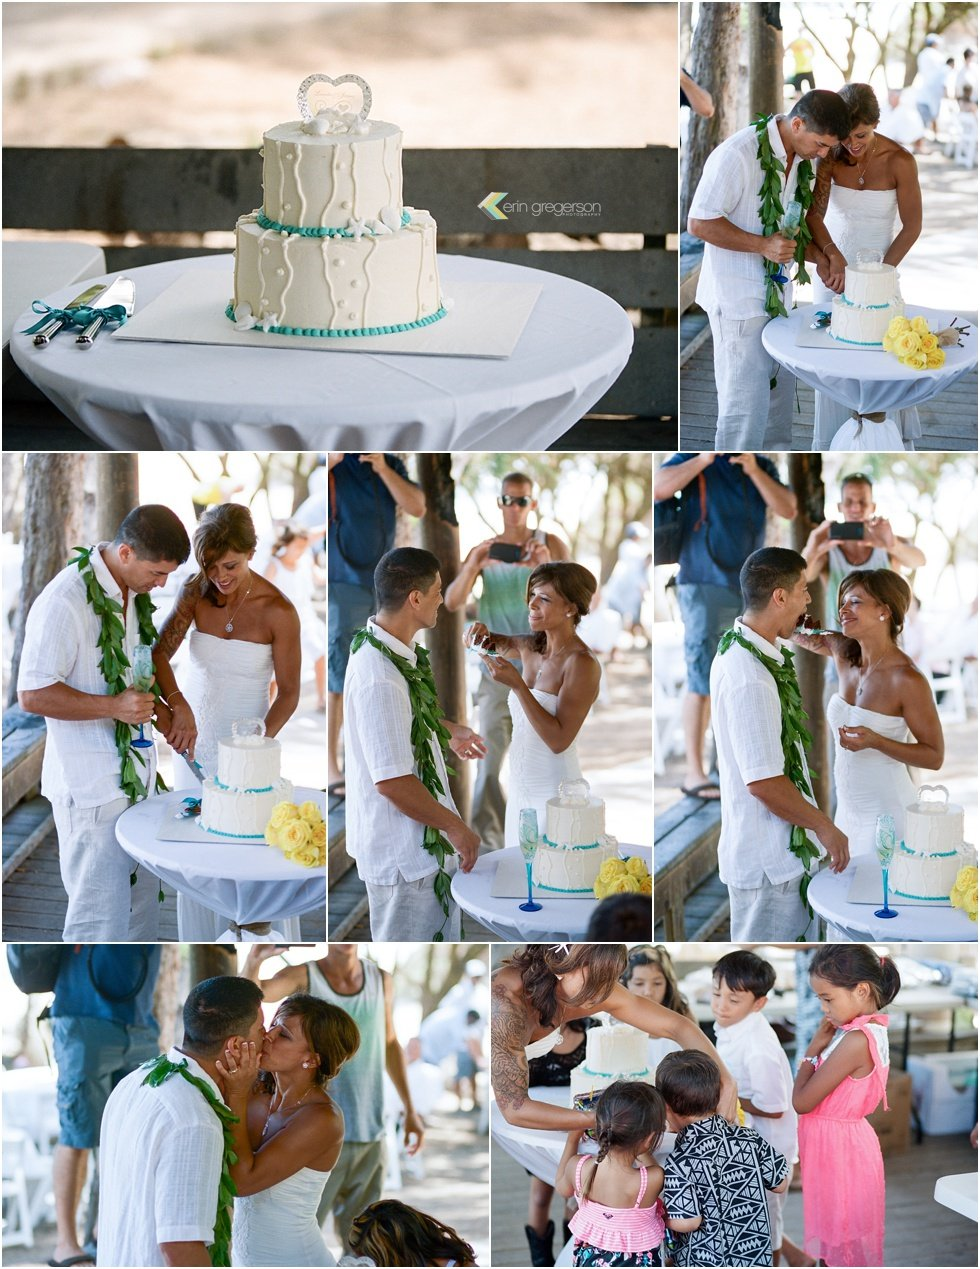 Kauai Wedding cake cutting by Erin Gregerson Photography